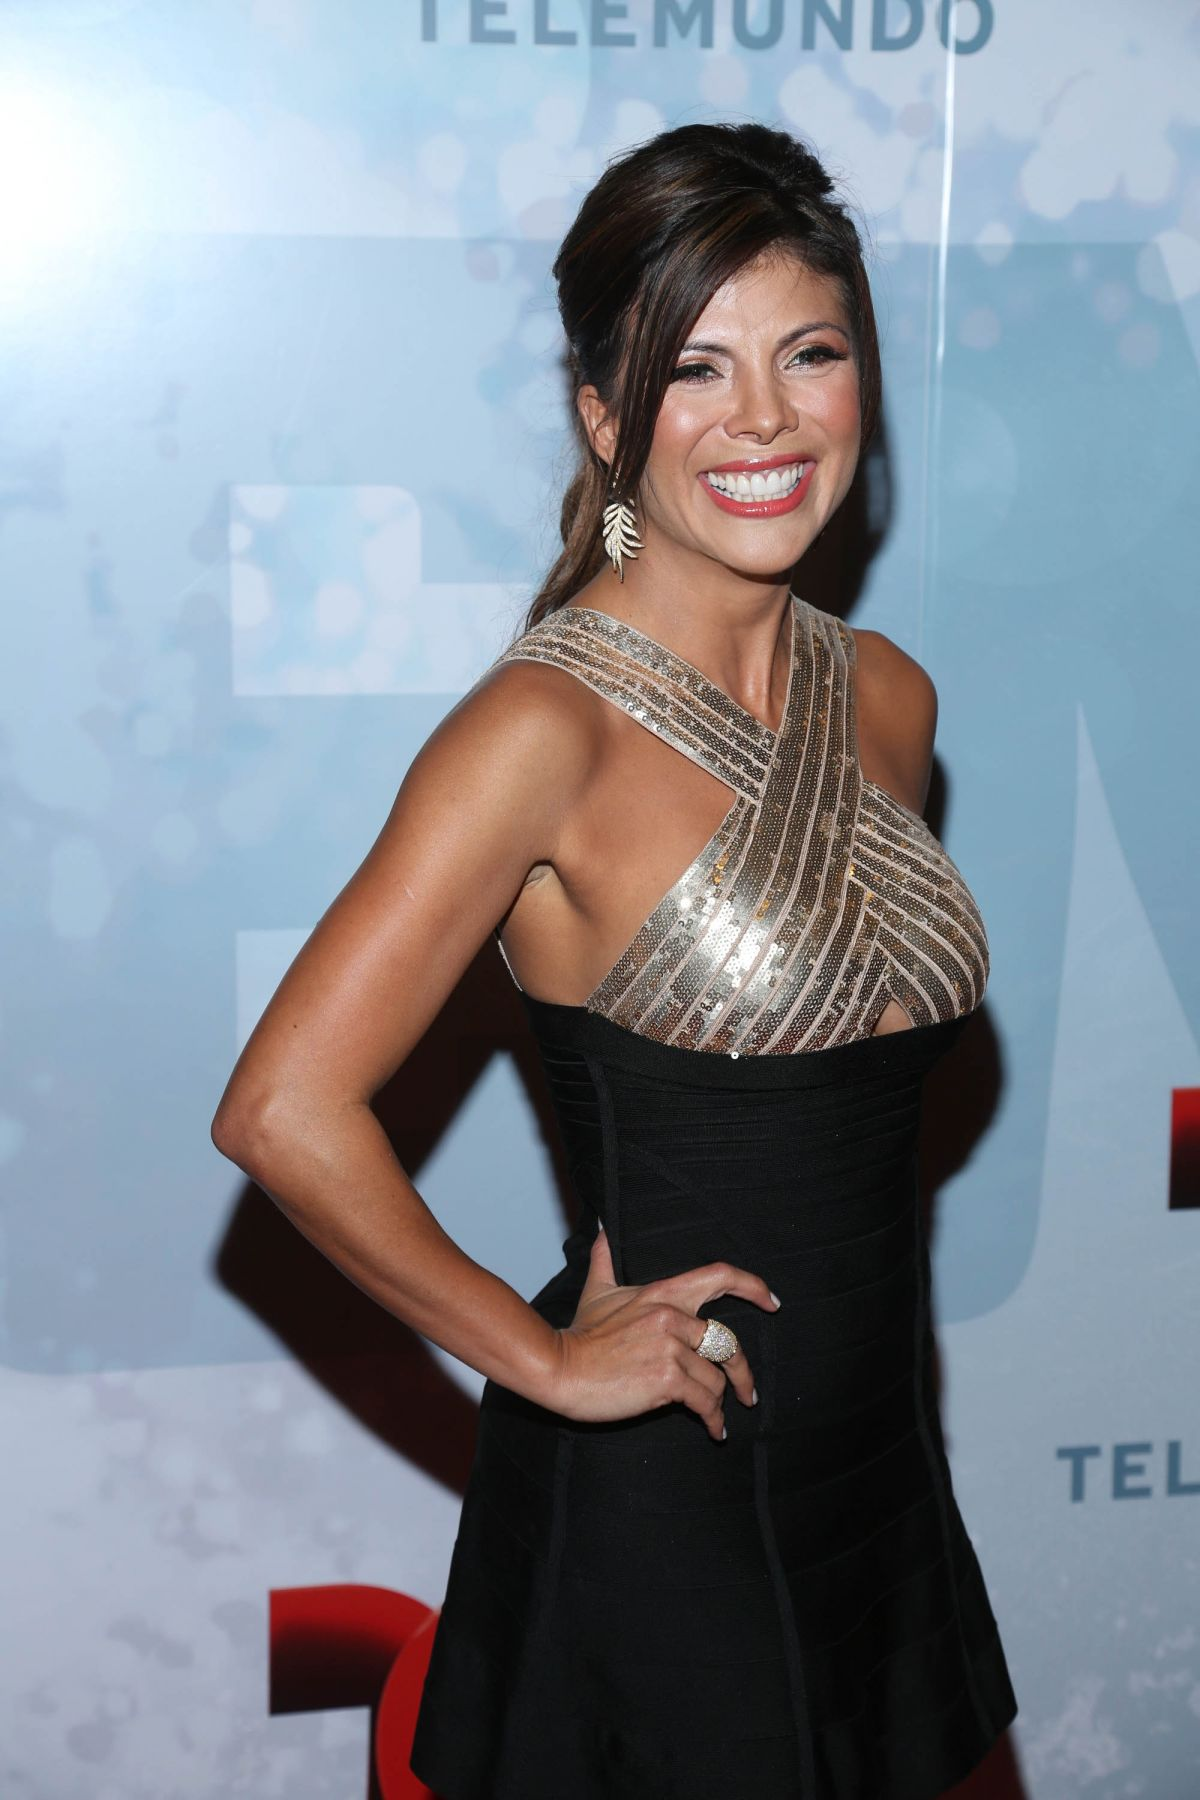 MIRELLA GRISALES at Telemundo Upfront 2014 in New York